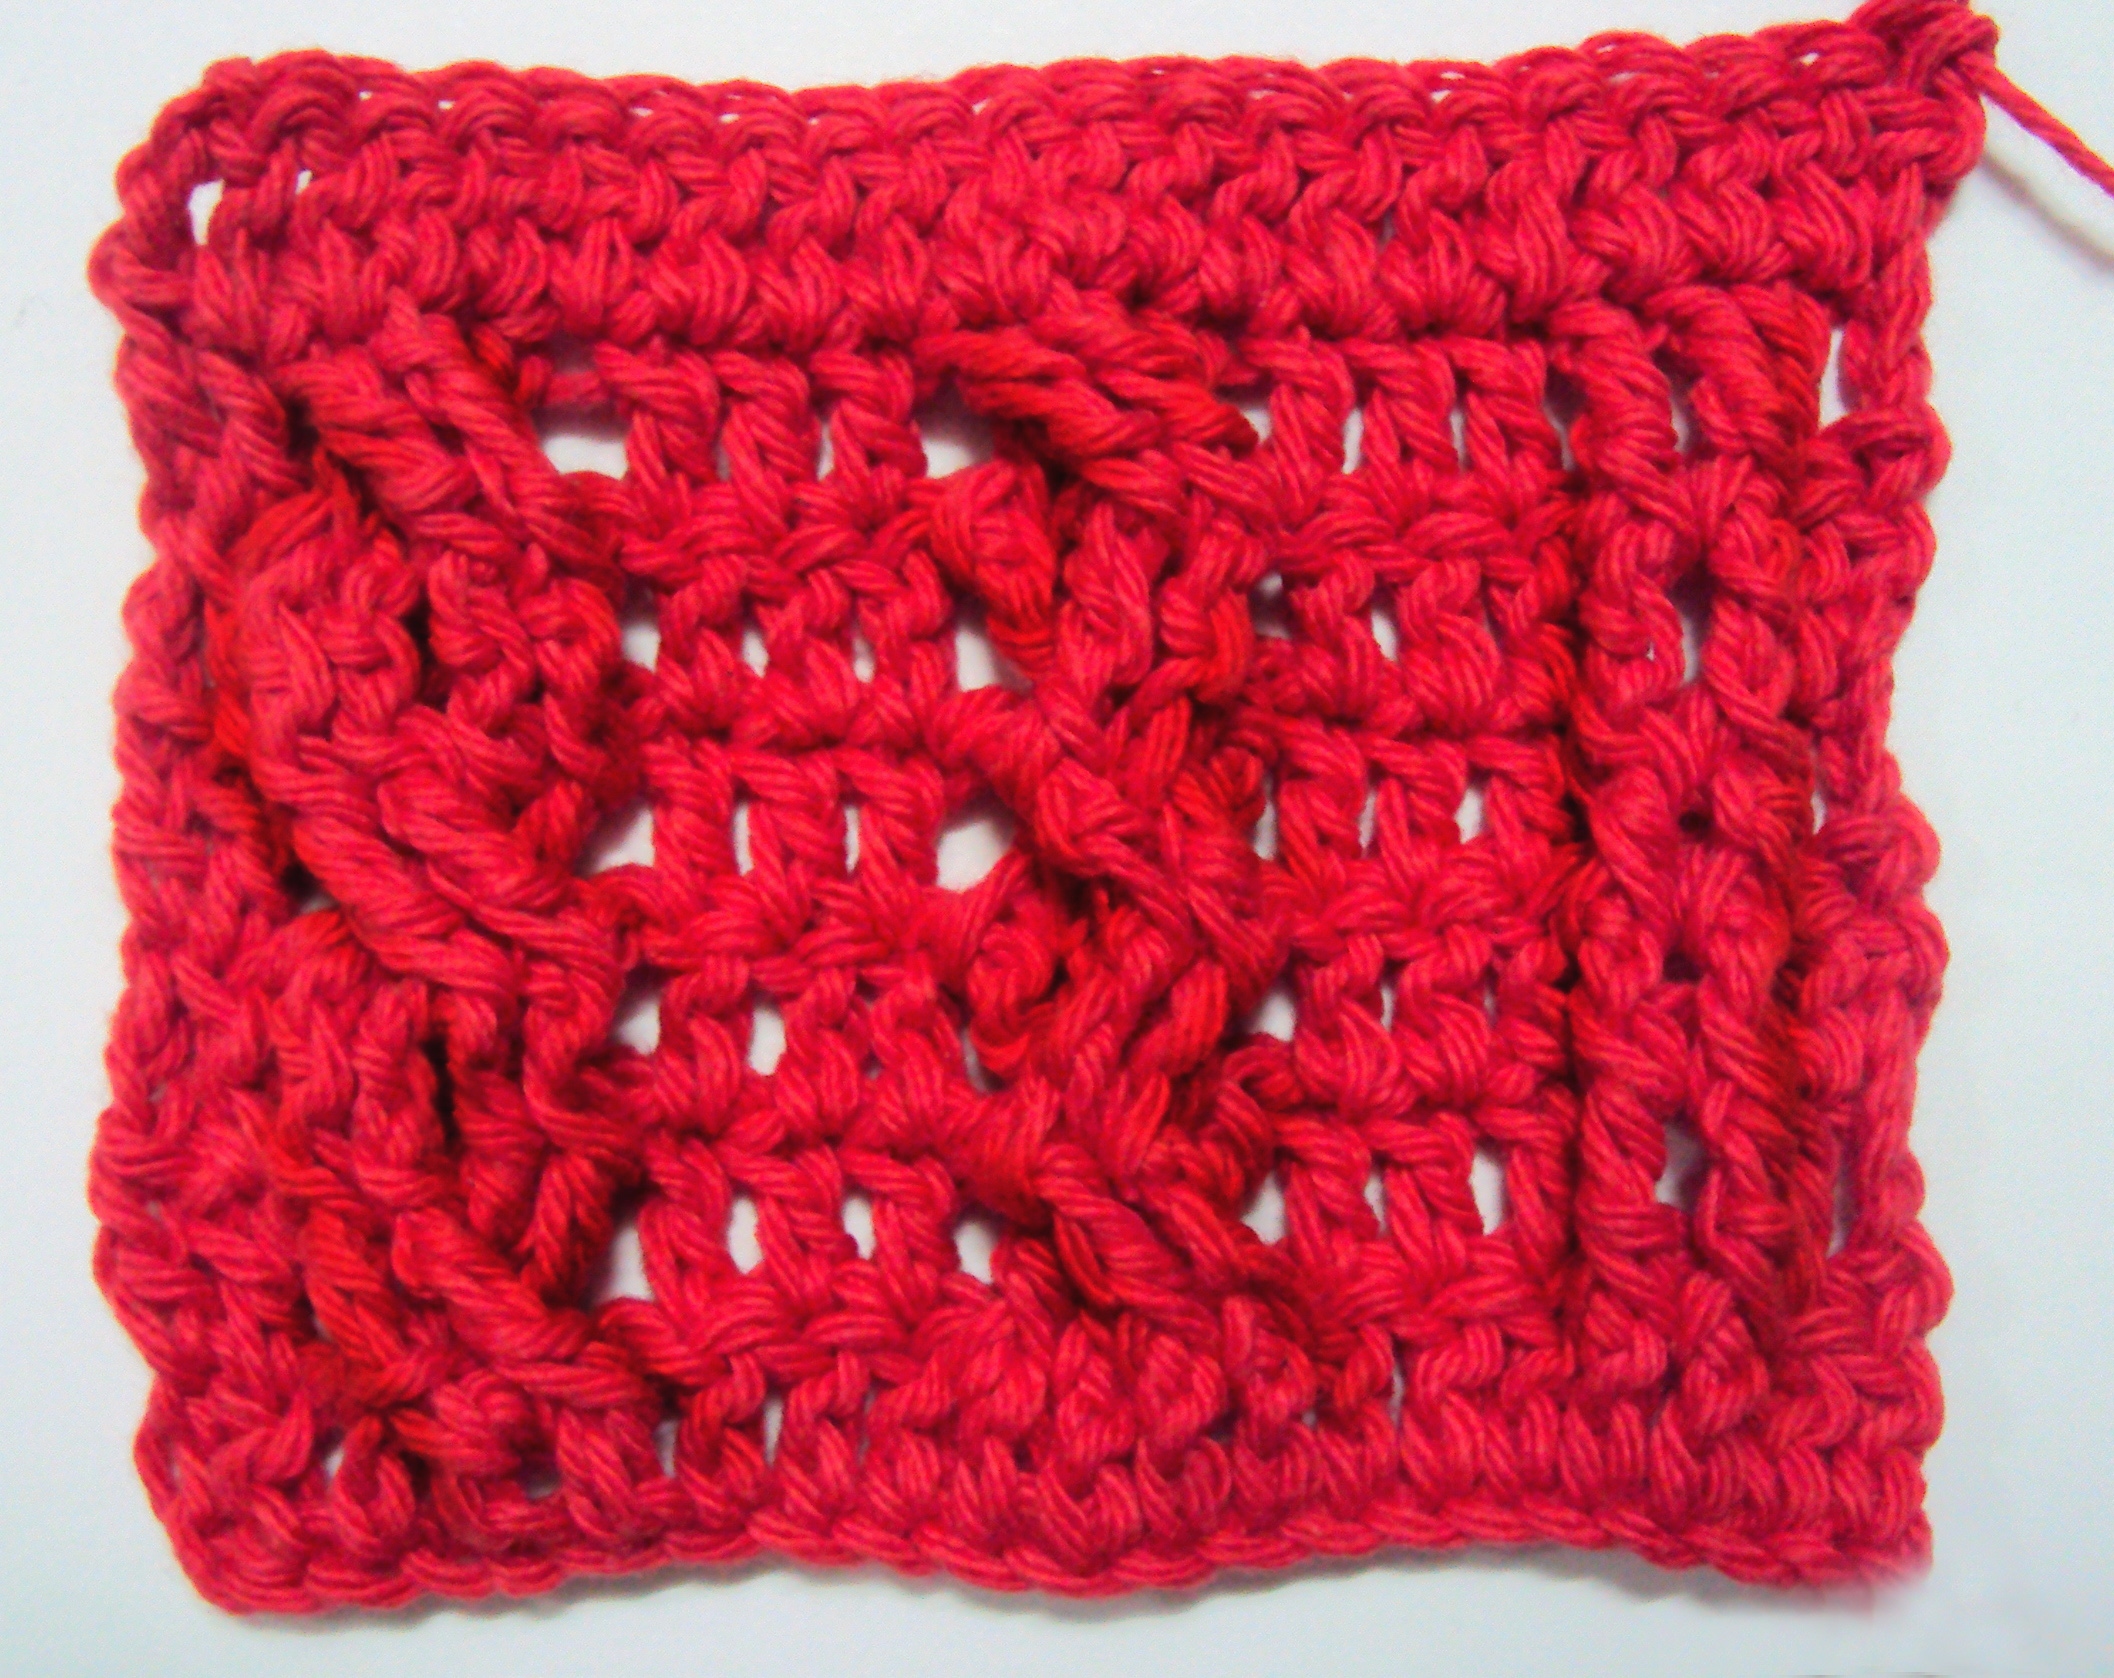 To Crochet : Crochet Spot ? Blog Archive ? How to Crochet: Cable Stitches ...